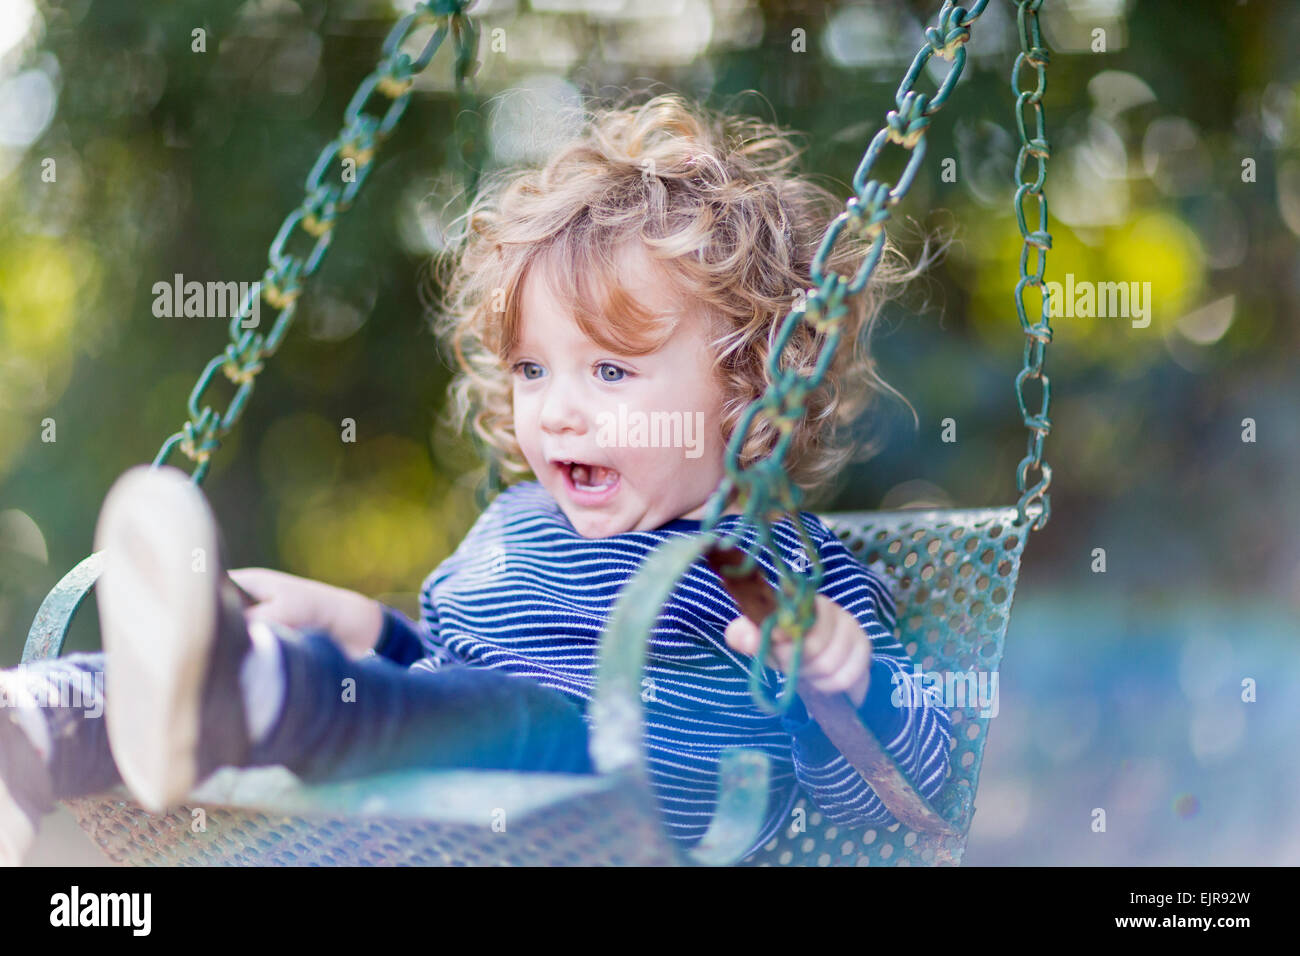 Caucasian baby boy sitting on swing Banque D'Images